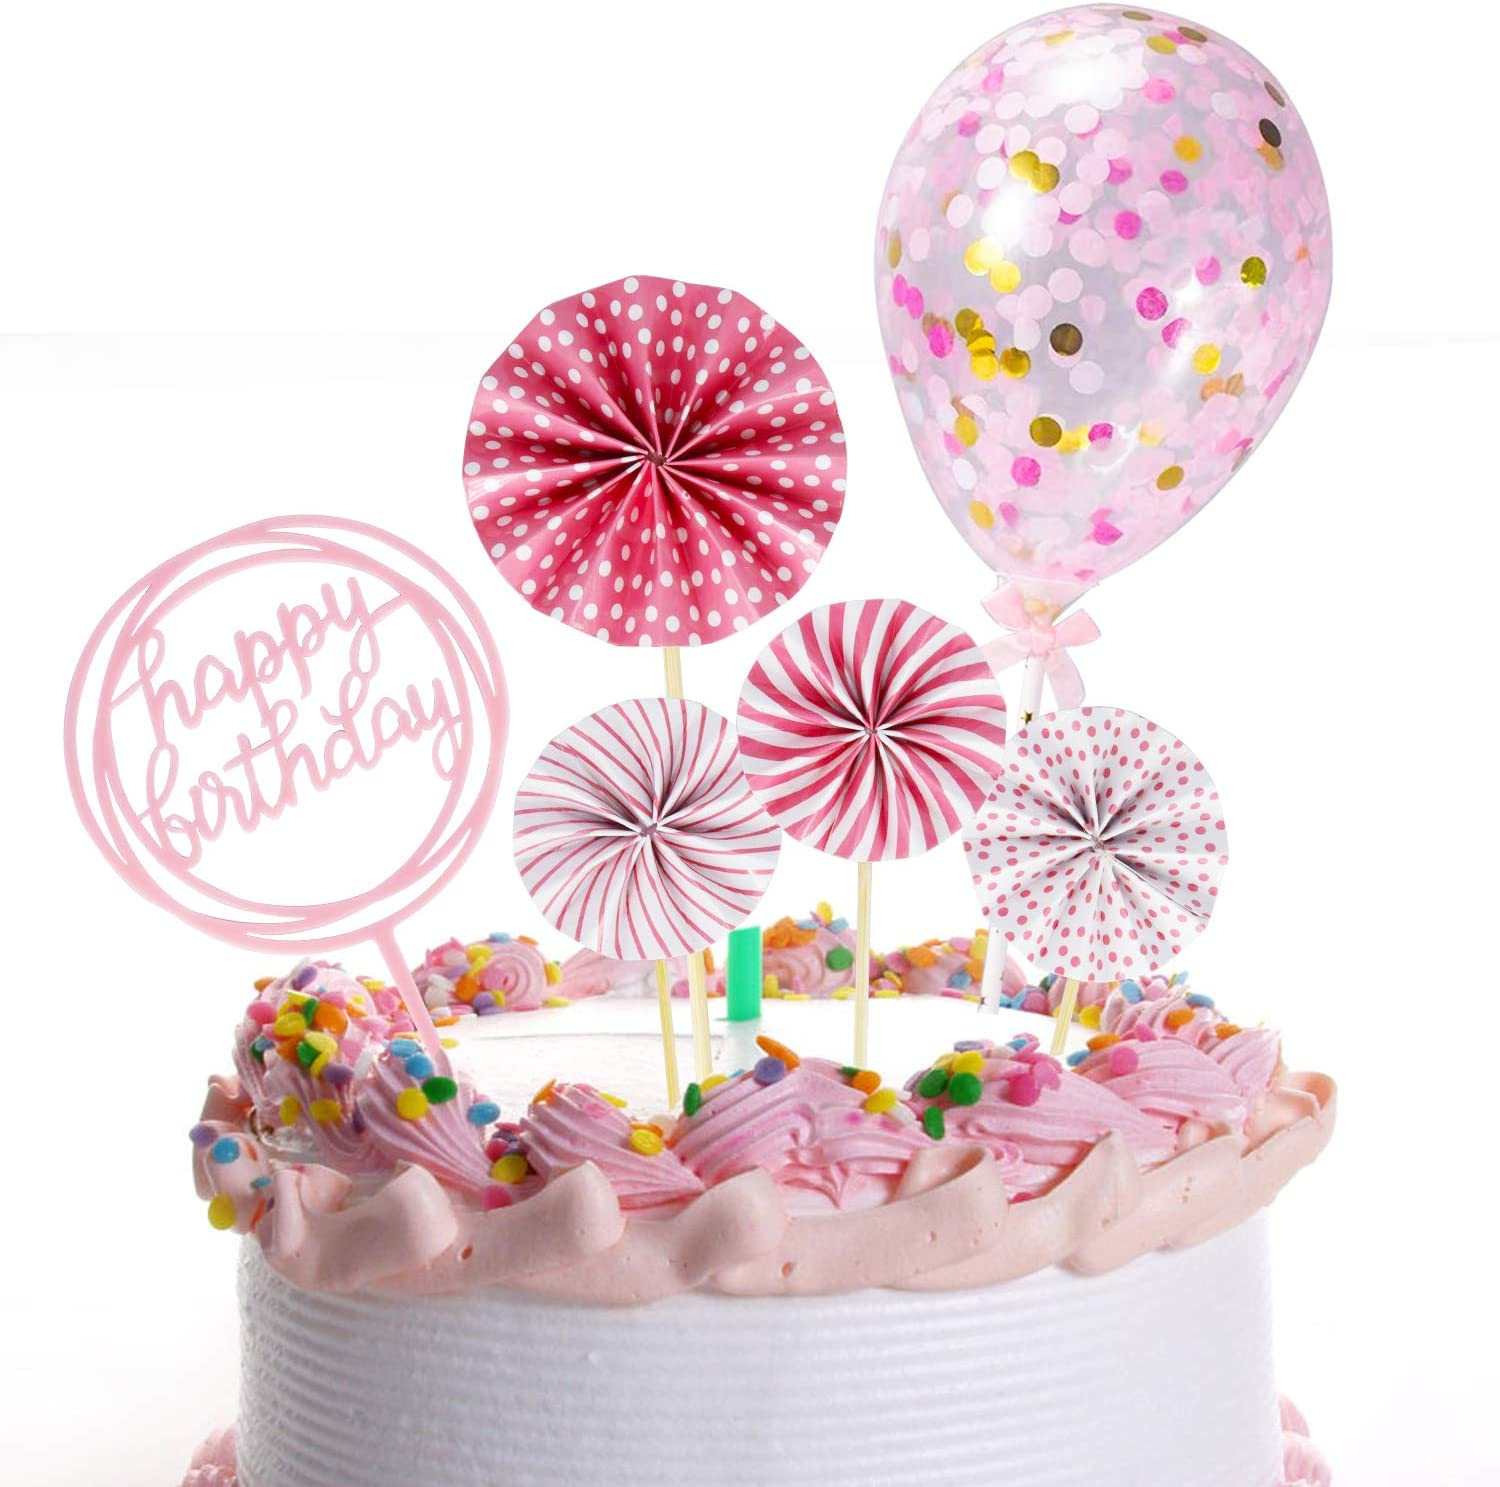 Izoel Rose Gold Cake Decoration Rose Gold Happy Birthday Candles Happy Birthday Banner Confetti Balloon Stars Cake Topper For Rose Gold Theme Party Decor Girl Kid Women Birthday Party Baby Shower Cooking